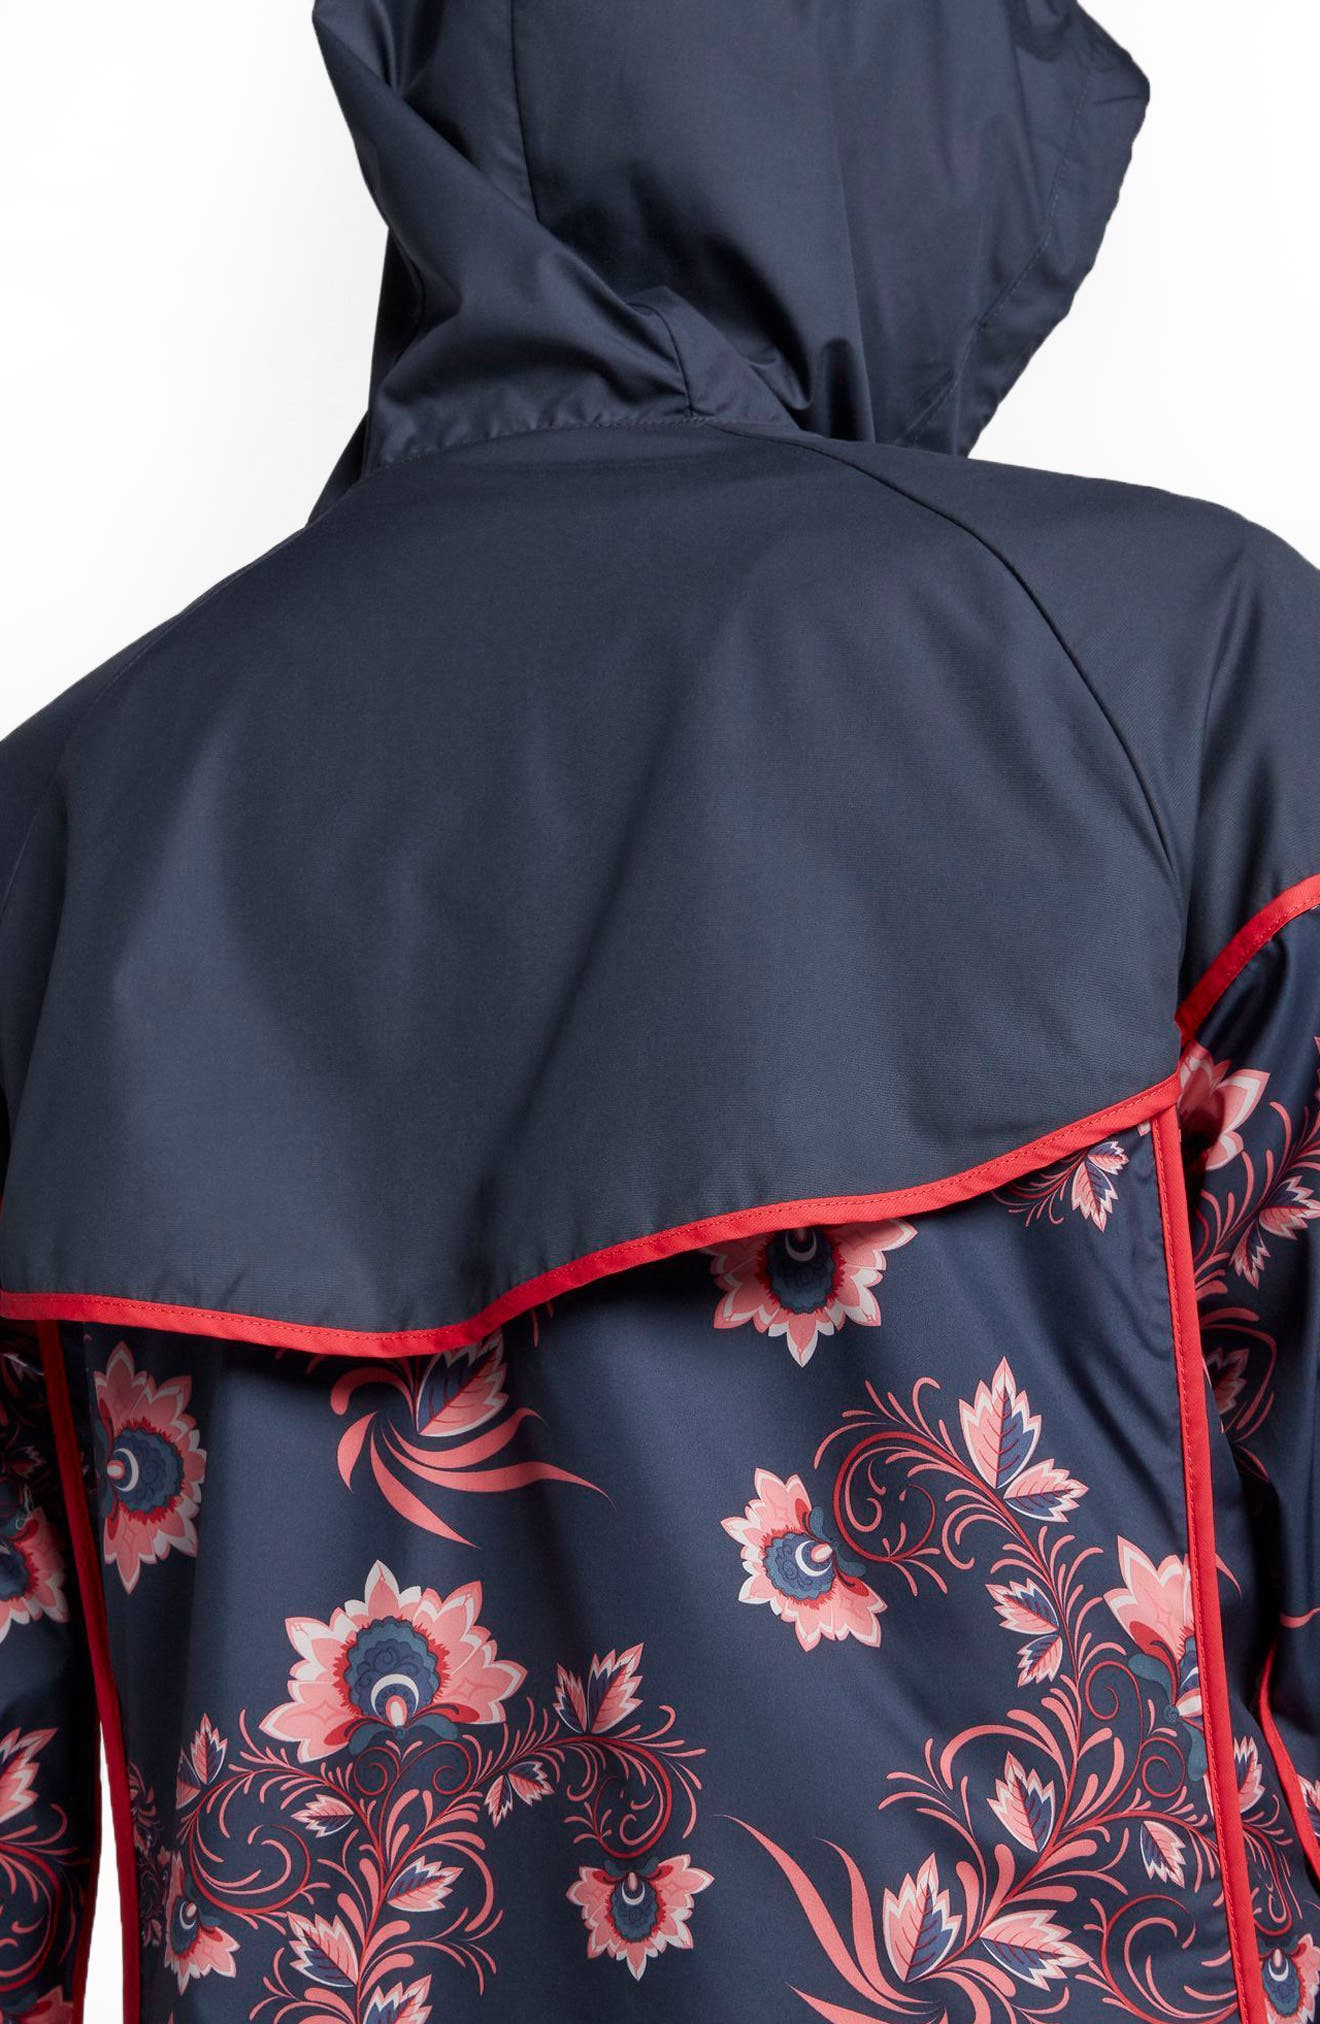 Sportswear Floral Print Track Jacket,                             Alternate thumbnail 4, color,